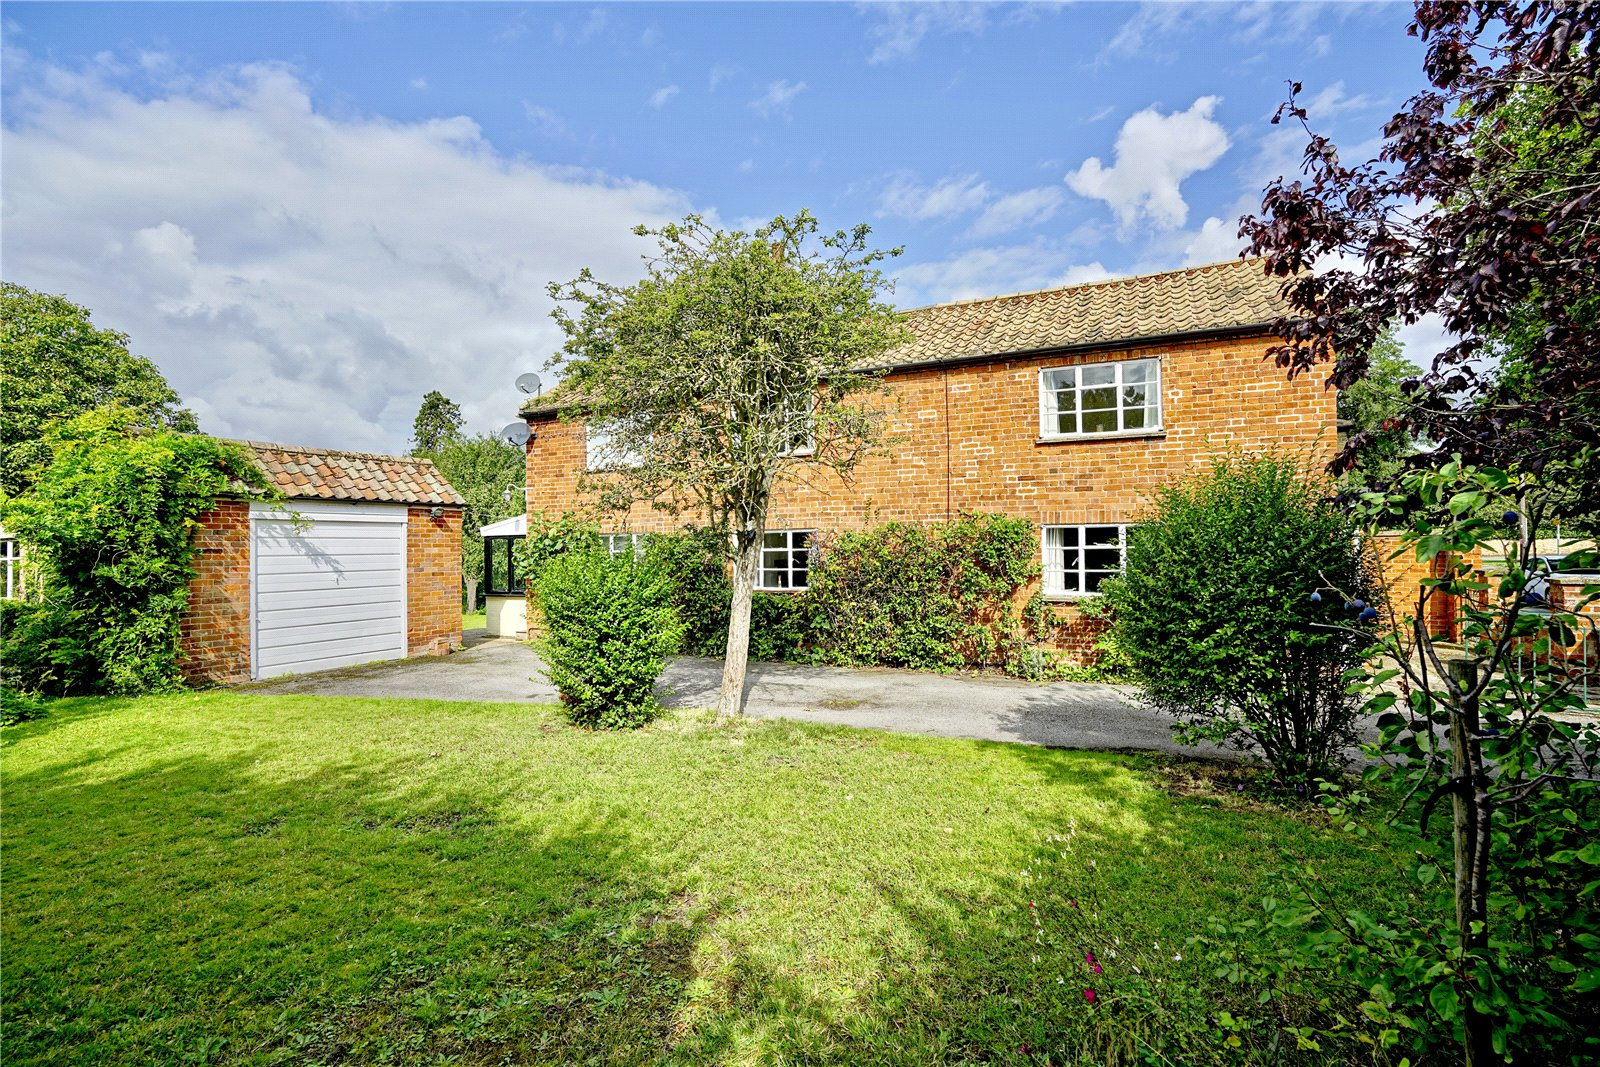 4 bed house for sale in Buckden 1